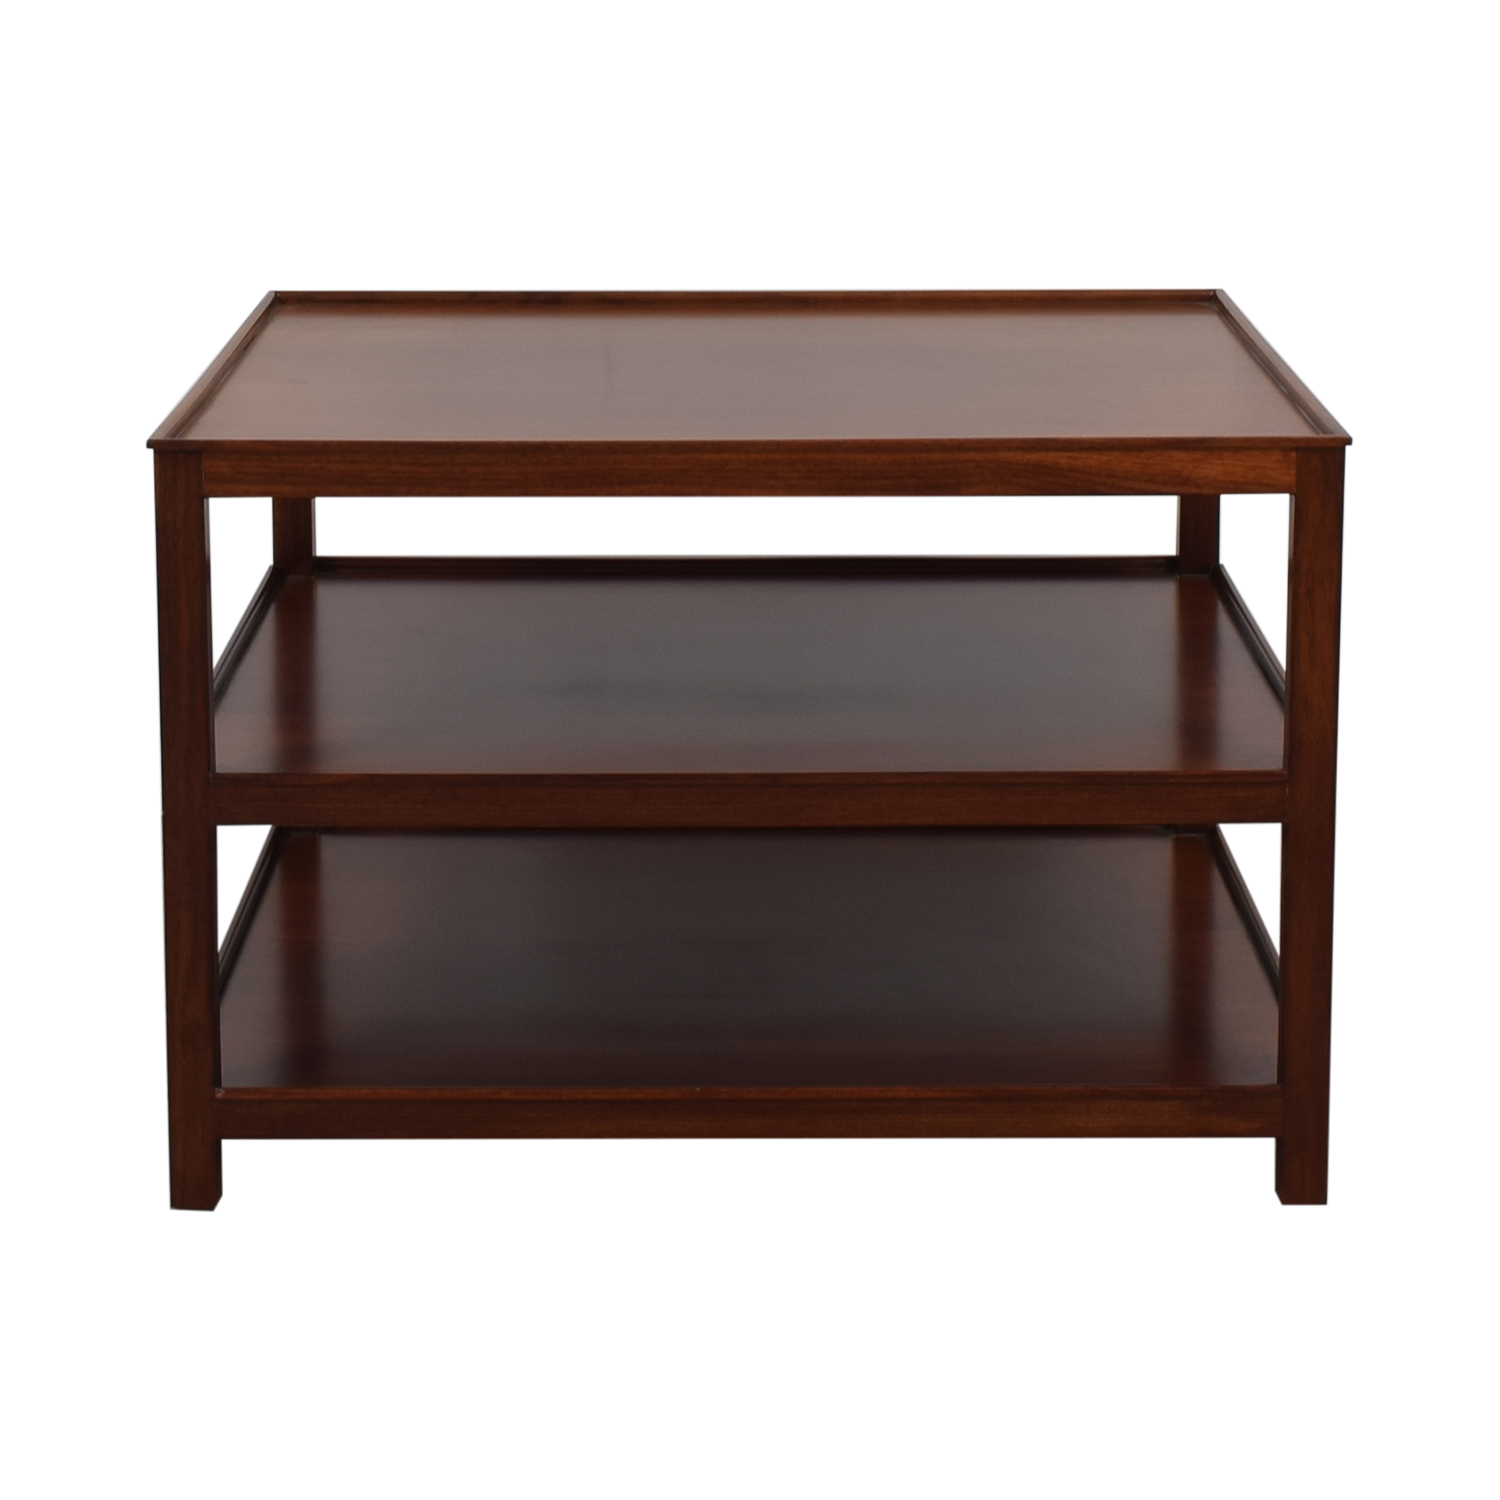 Furniture Masters Furniture Masters Storage Coffee Table price